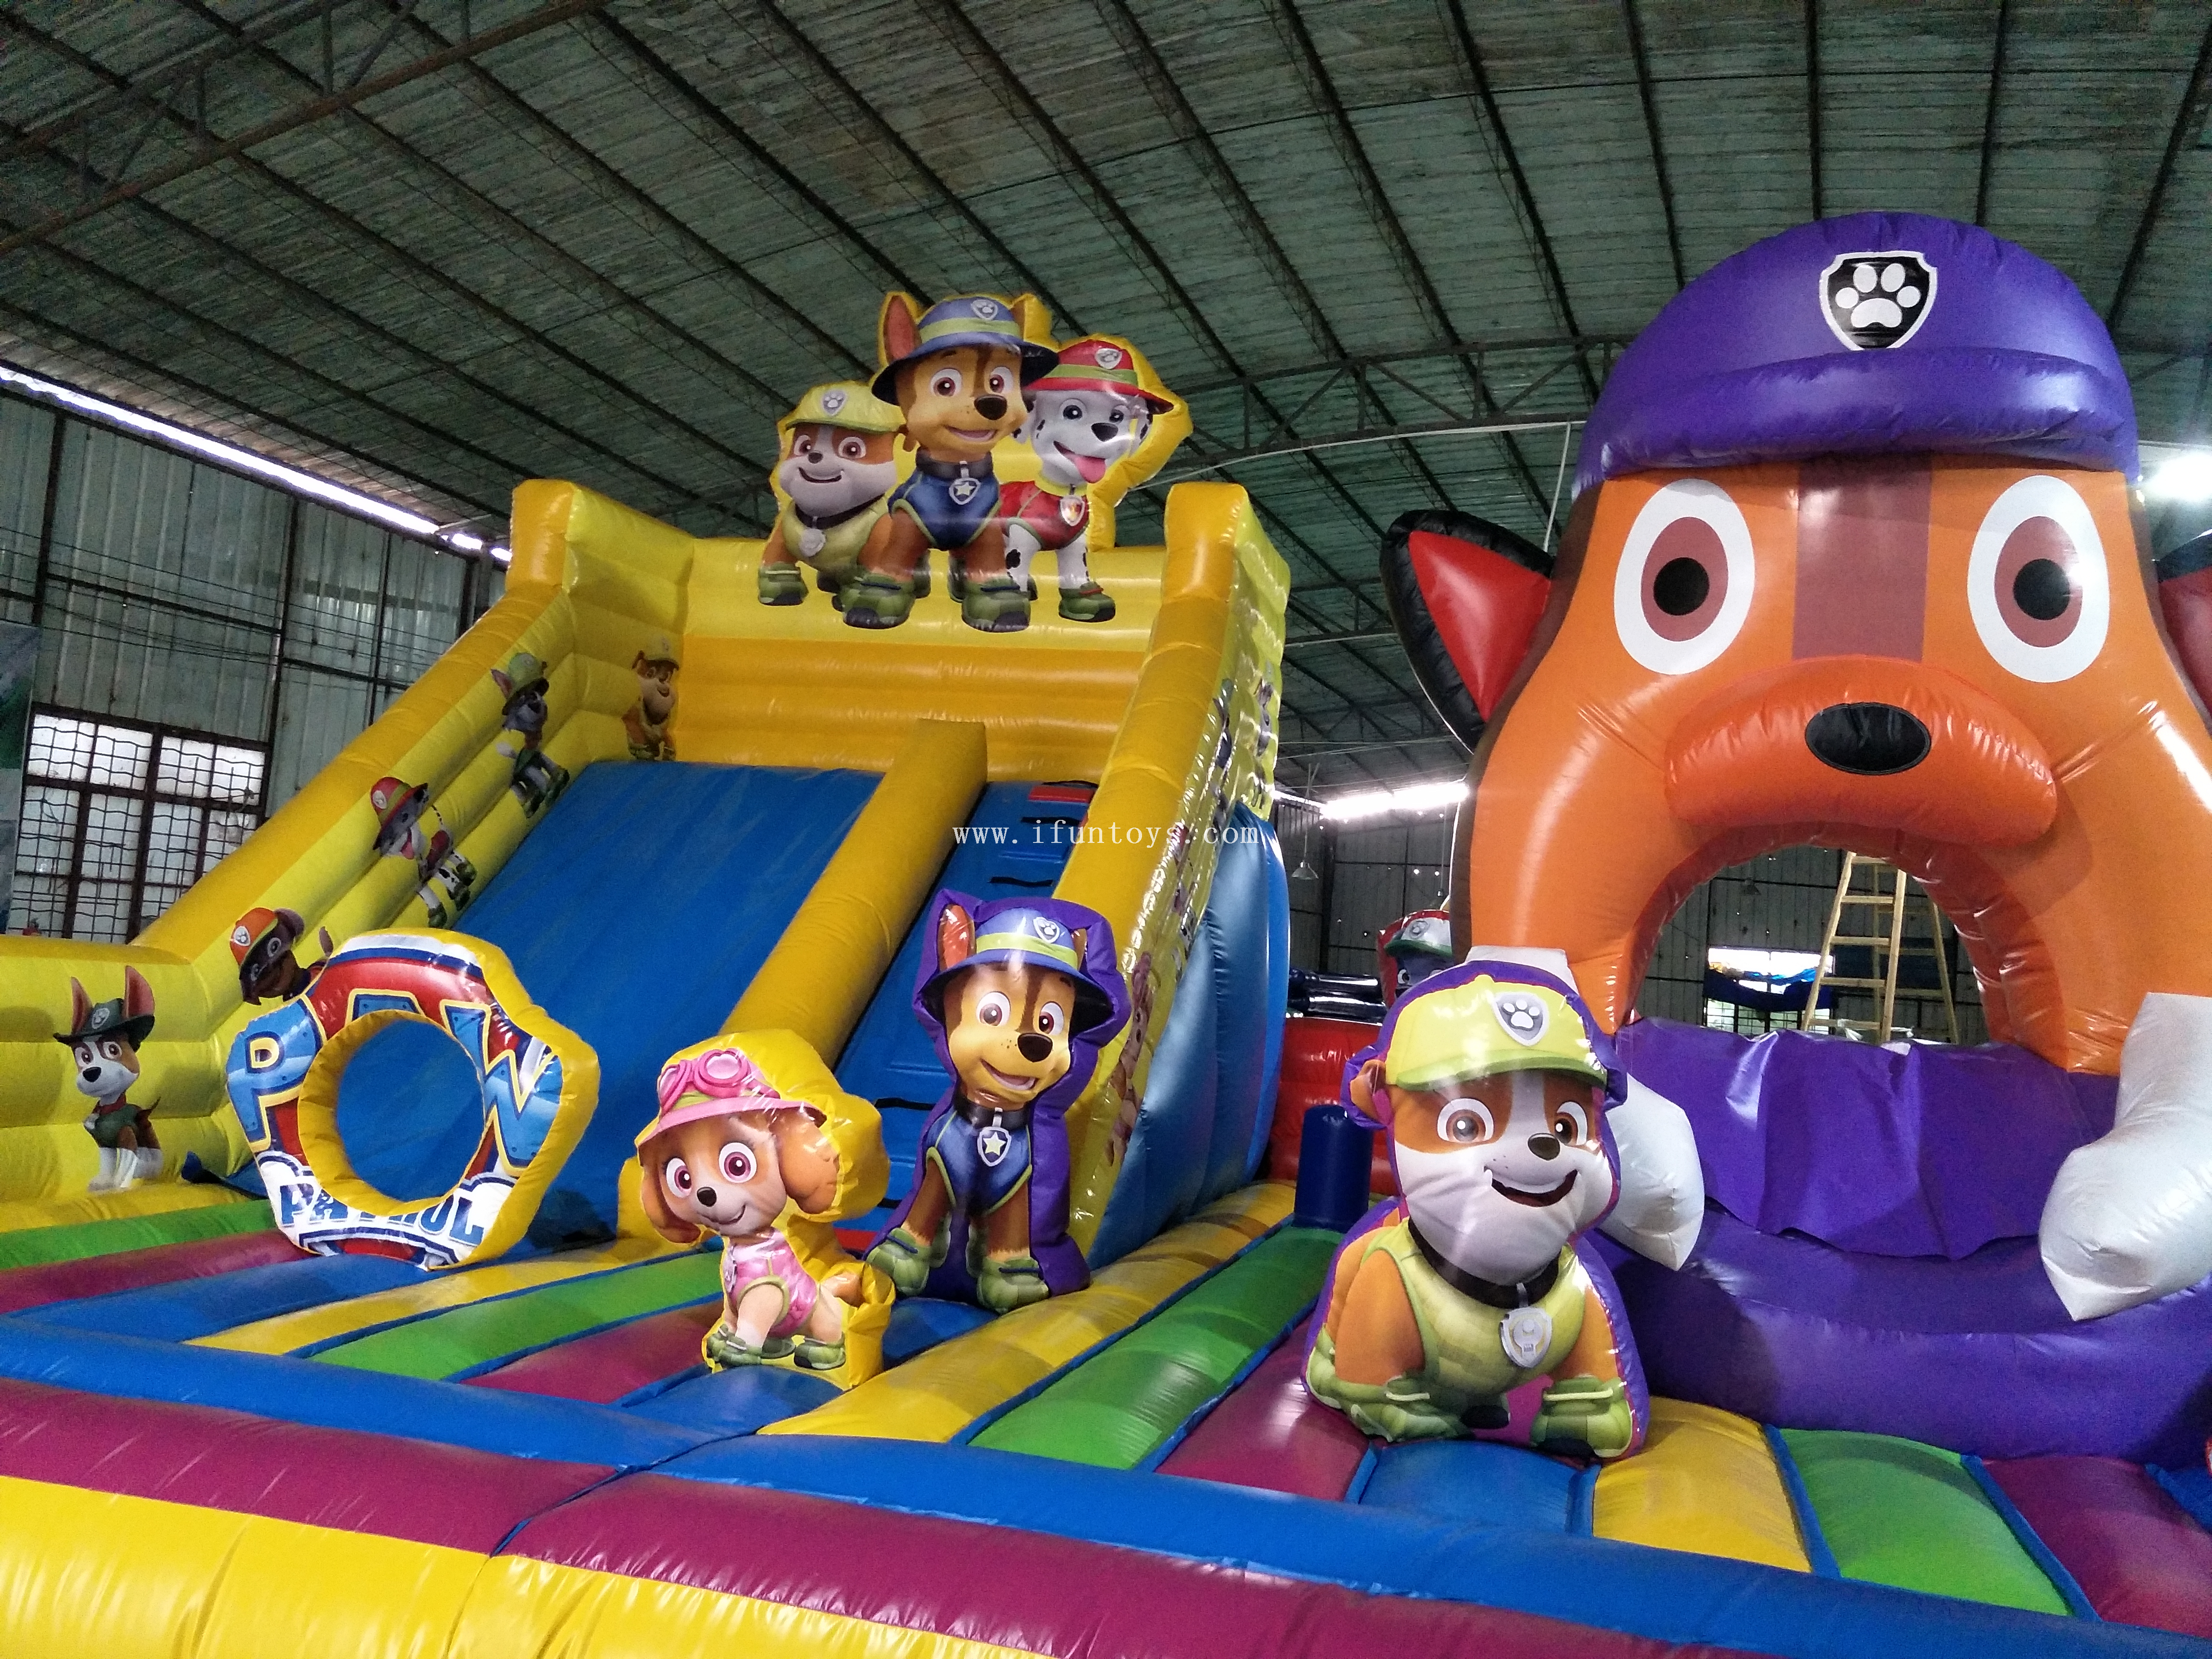 New design fire dog belly theme fun city with slide/ inflatable bouncy castle playground/ inflatable amusement park for sale